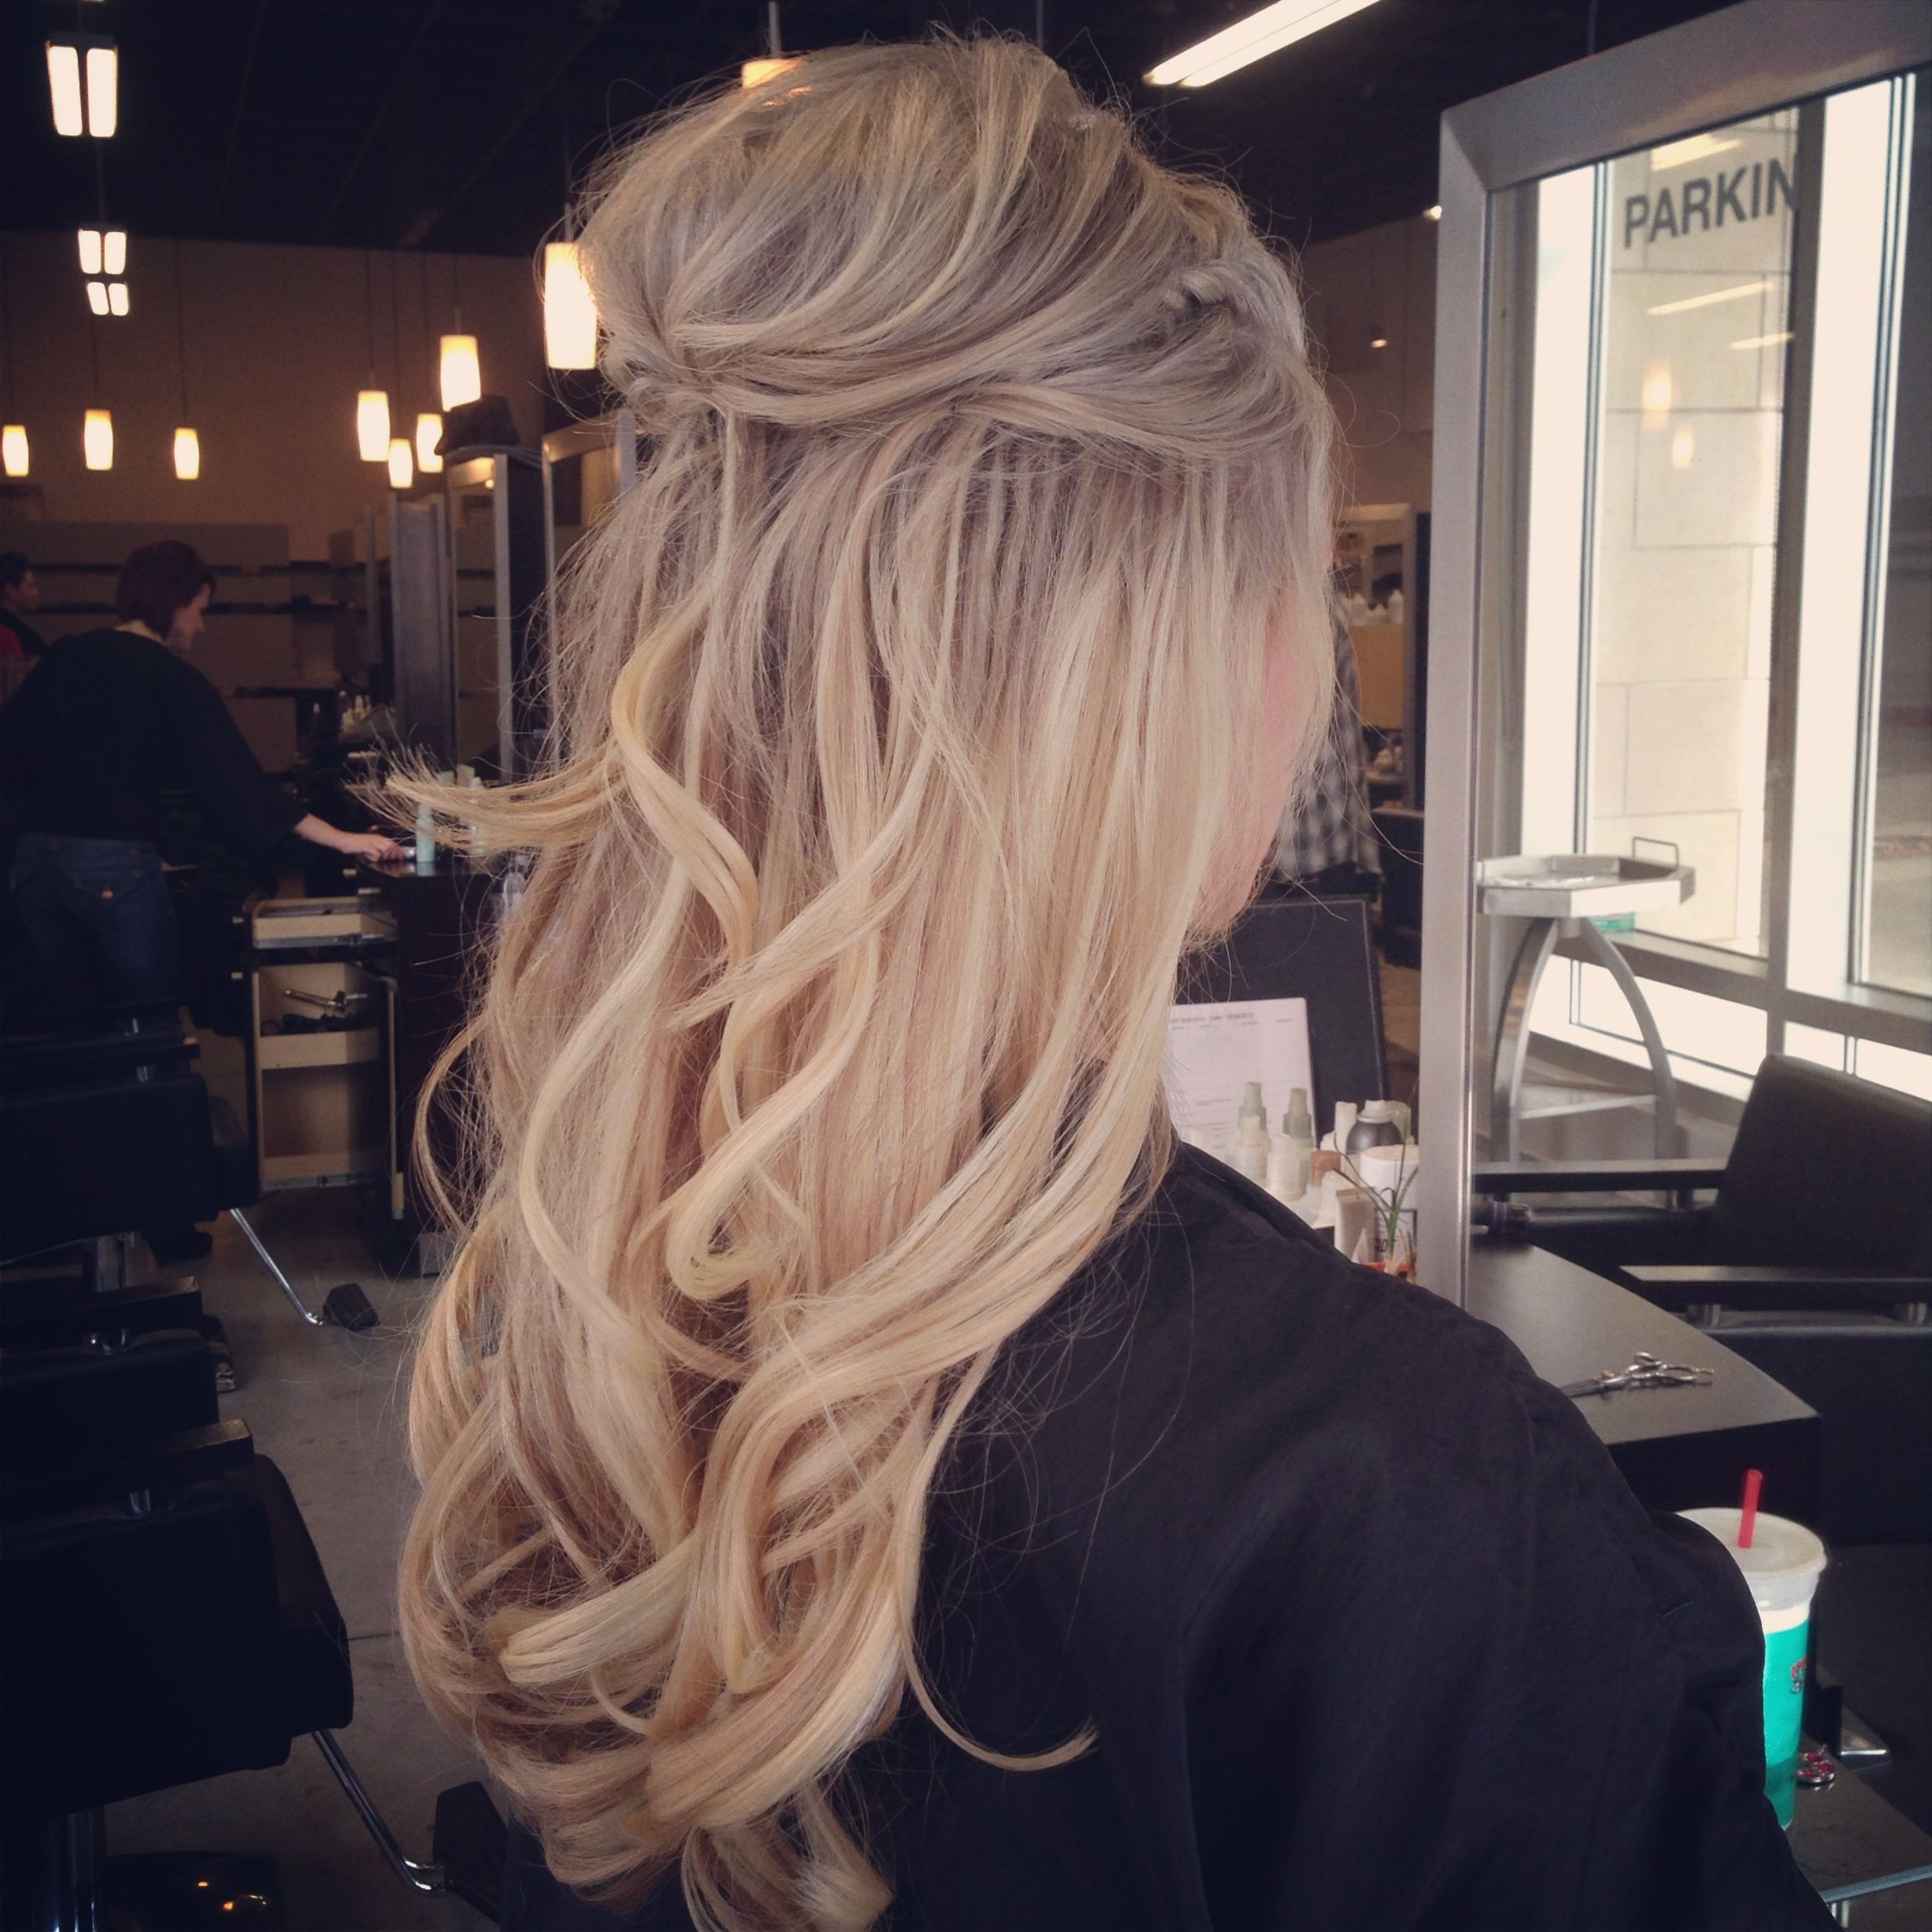 Perfect blonde loose curls wedding ideas for kelsey and ike